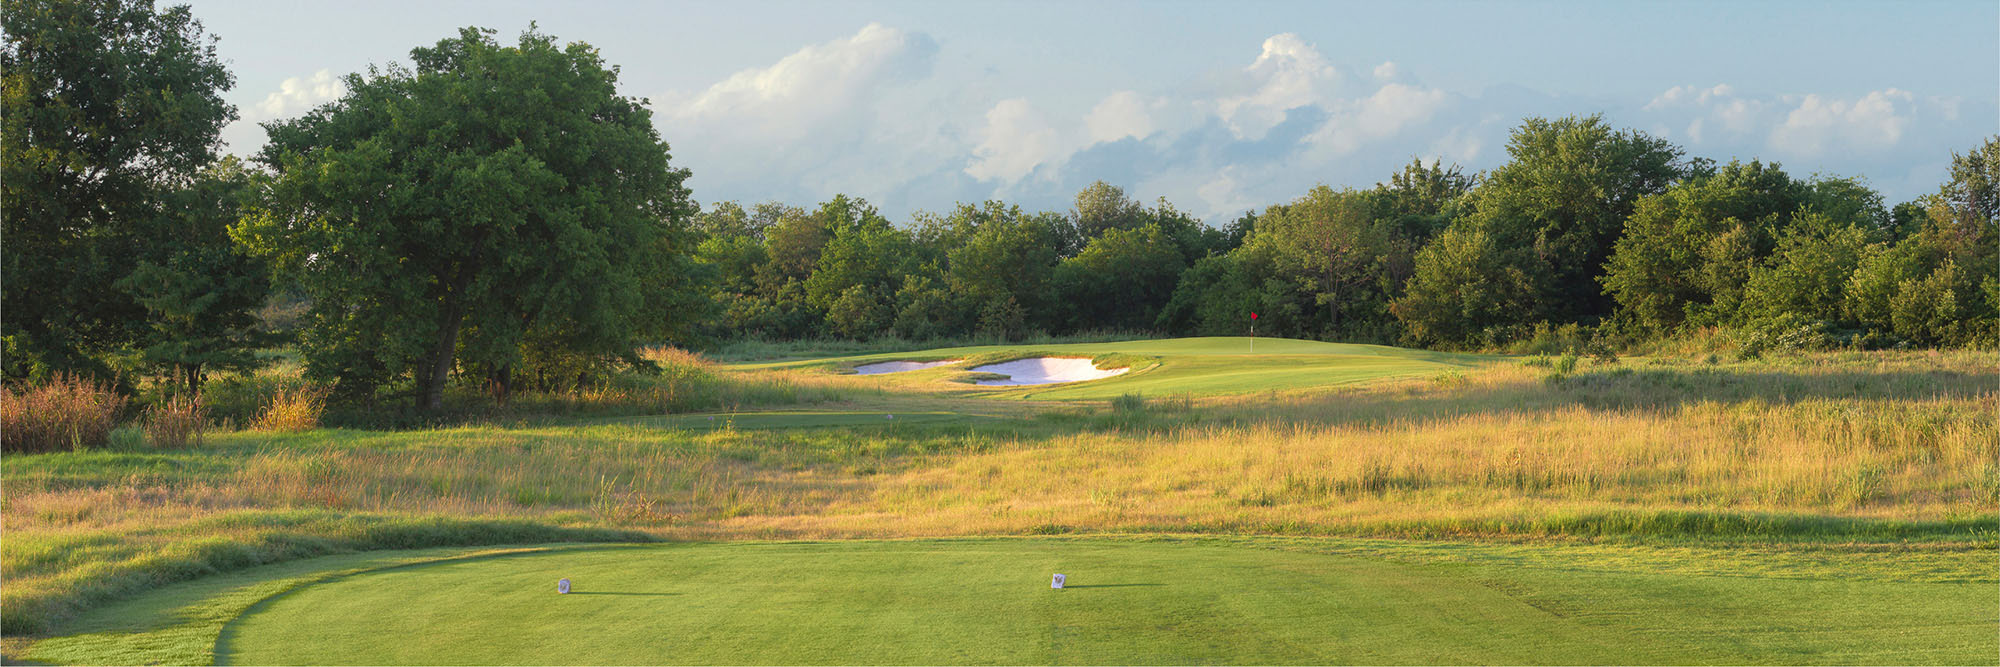 Golf Course Image - Patriot No. 11